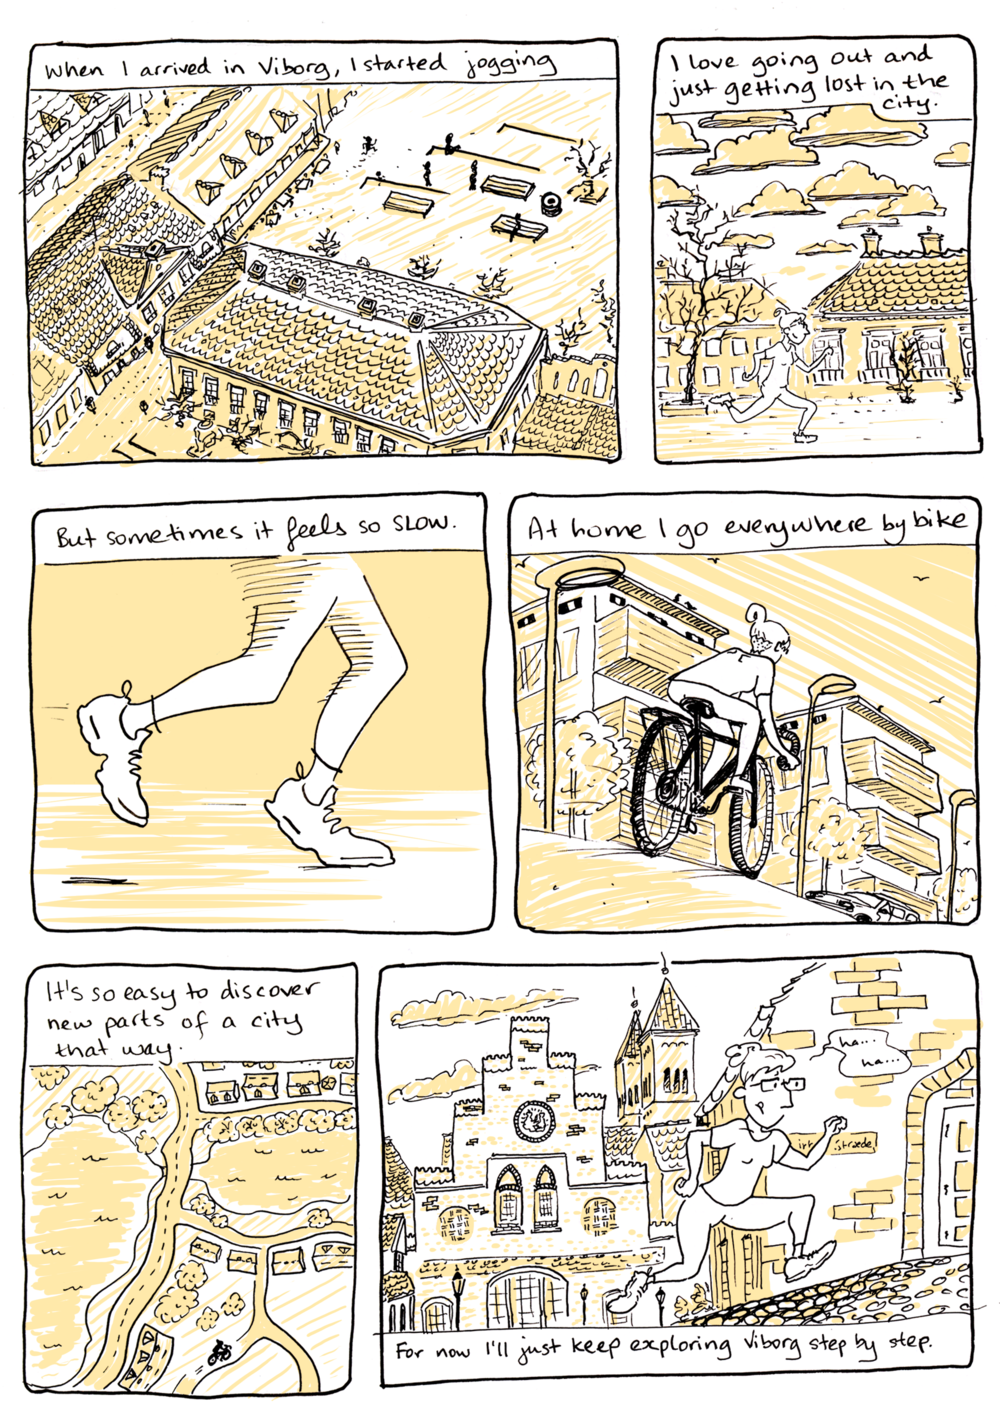 This comic seems to imply that I go running with any kind of regularity. In reality, I sit around and draw about how I ought to go running, and consider that mental exercise to be sufficient.